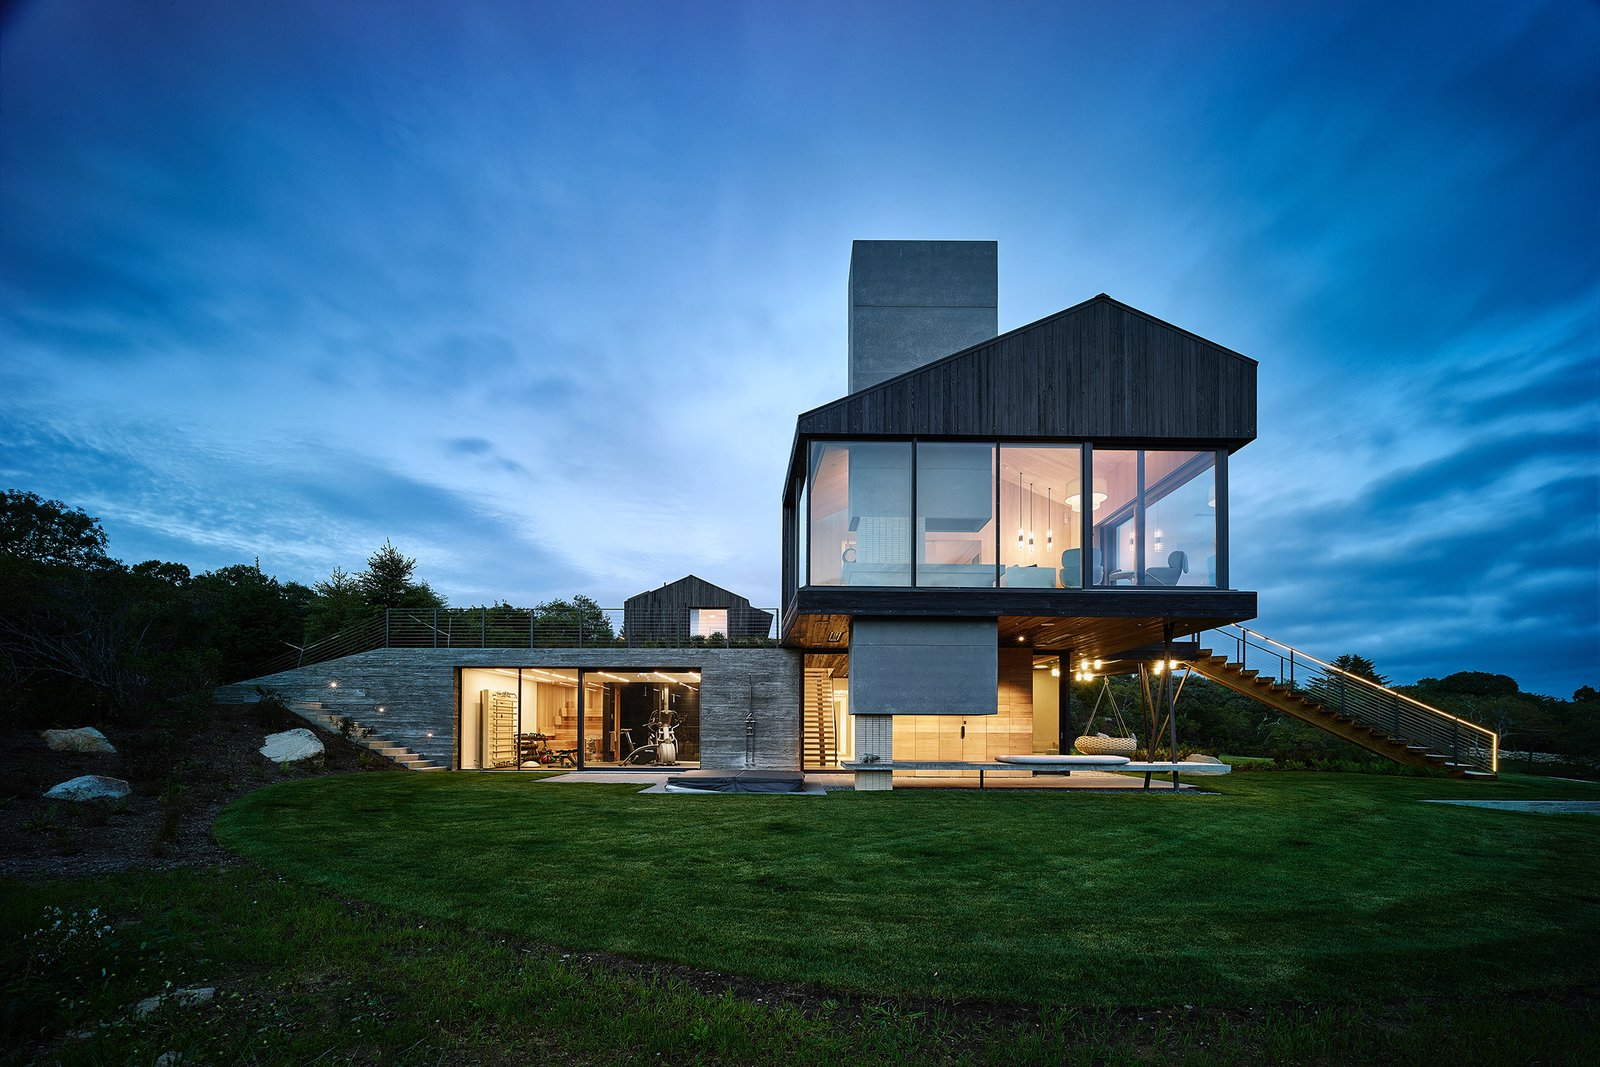 Exterior, House Building Type, Concrete Siding Material, Glass Siding Material, and Wood Siding Material Elevation looking out over the sheepfold. The cantilevered living room extends over an outdoor fireplace and sitting area, and the smokestack extends through.   Chilmark House